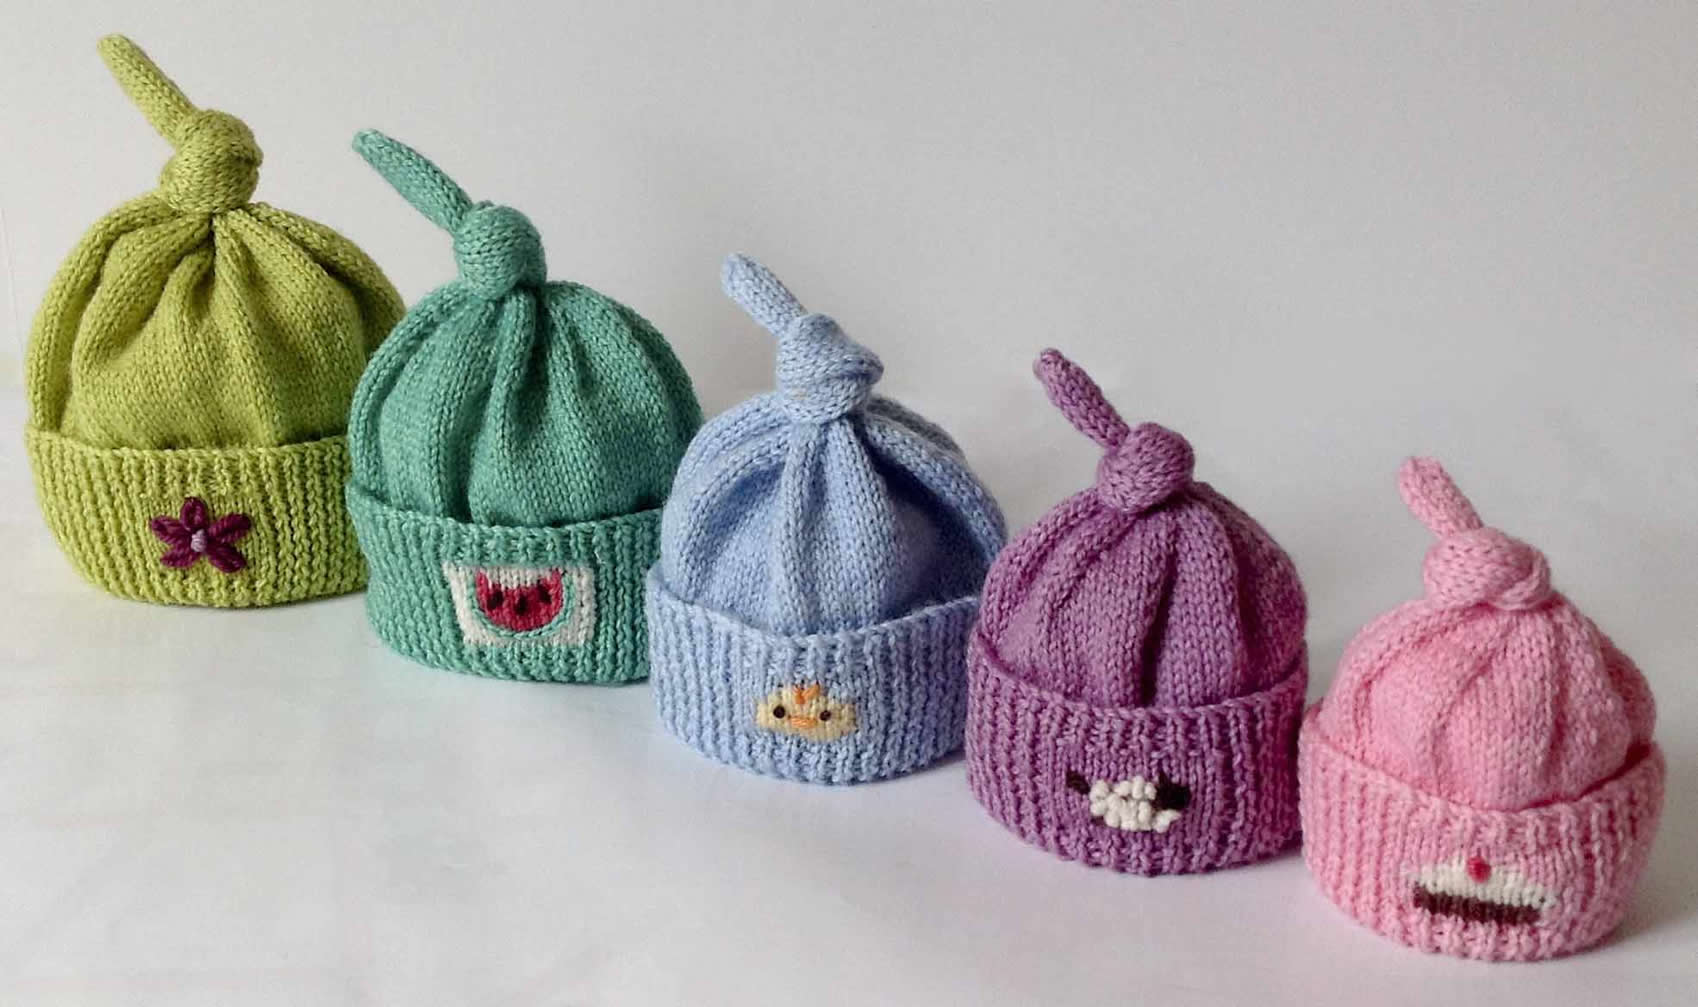 8 Preemie Knit Hat Patterns - The Funky Stitch